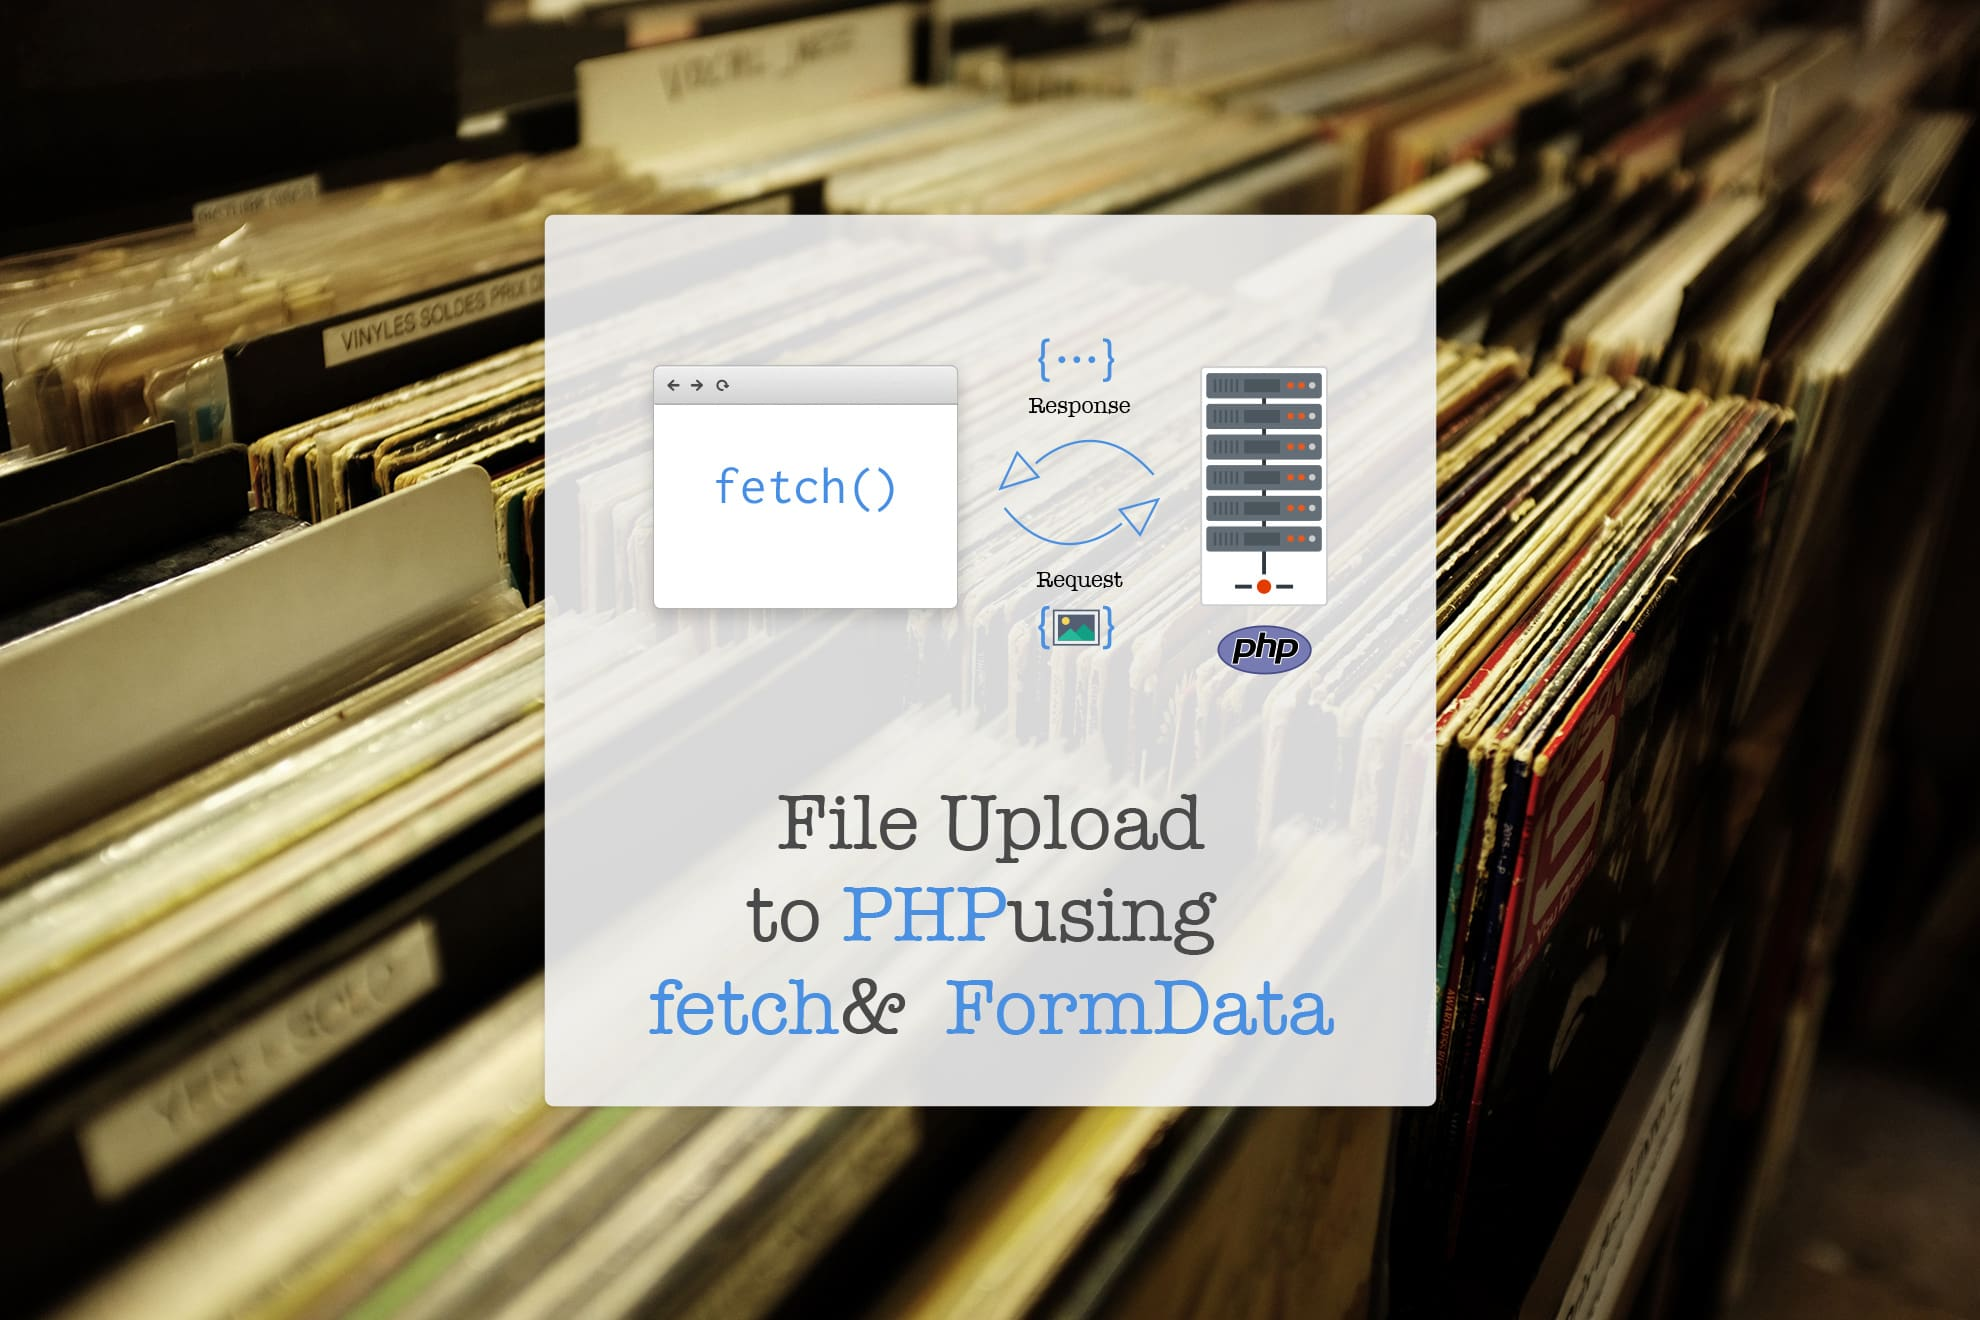 Upload files to PHP backend using fetch and FormData - Time